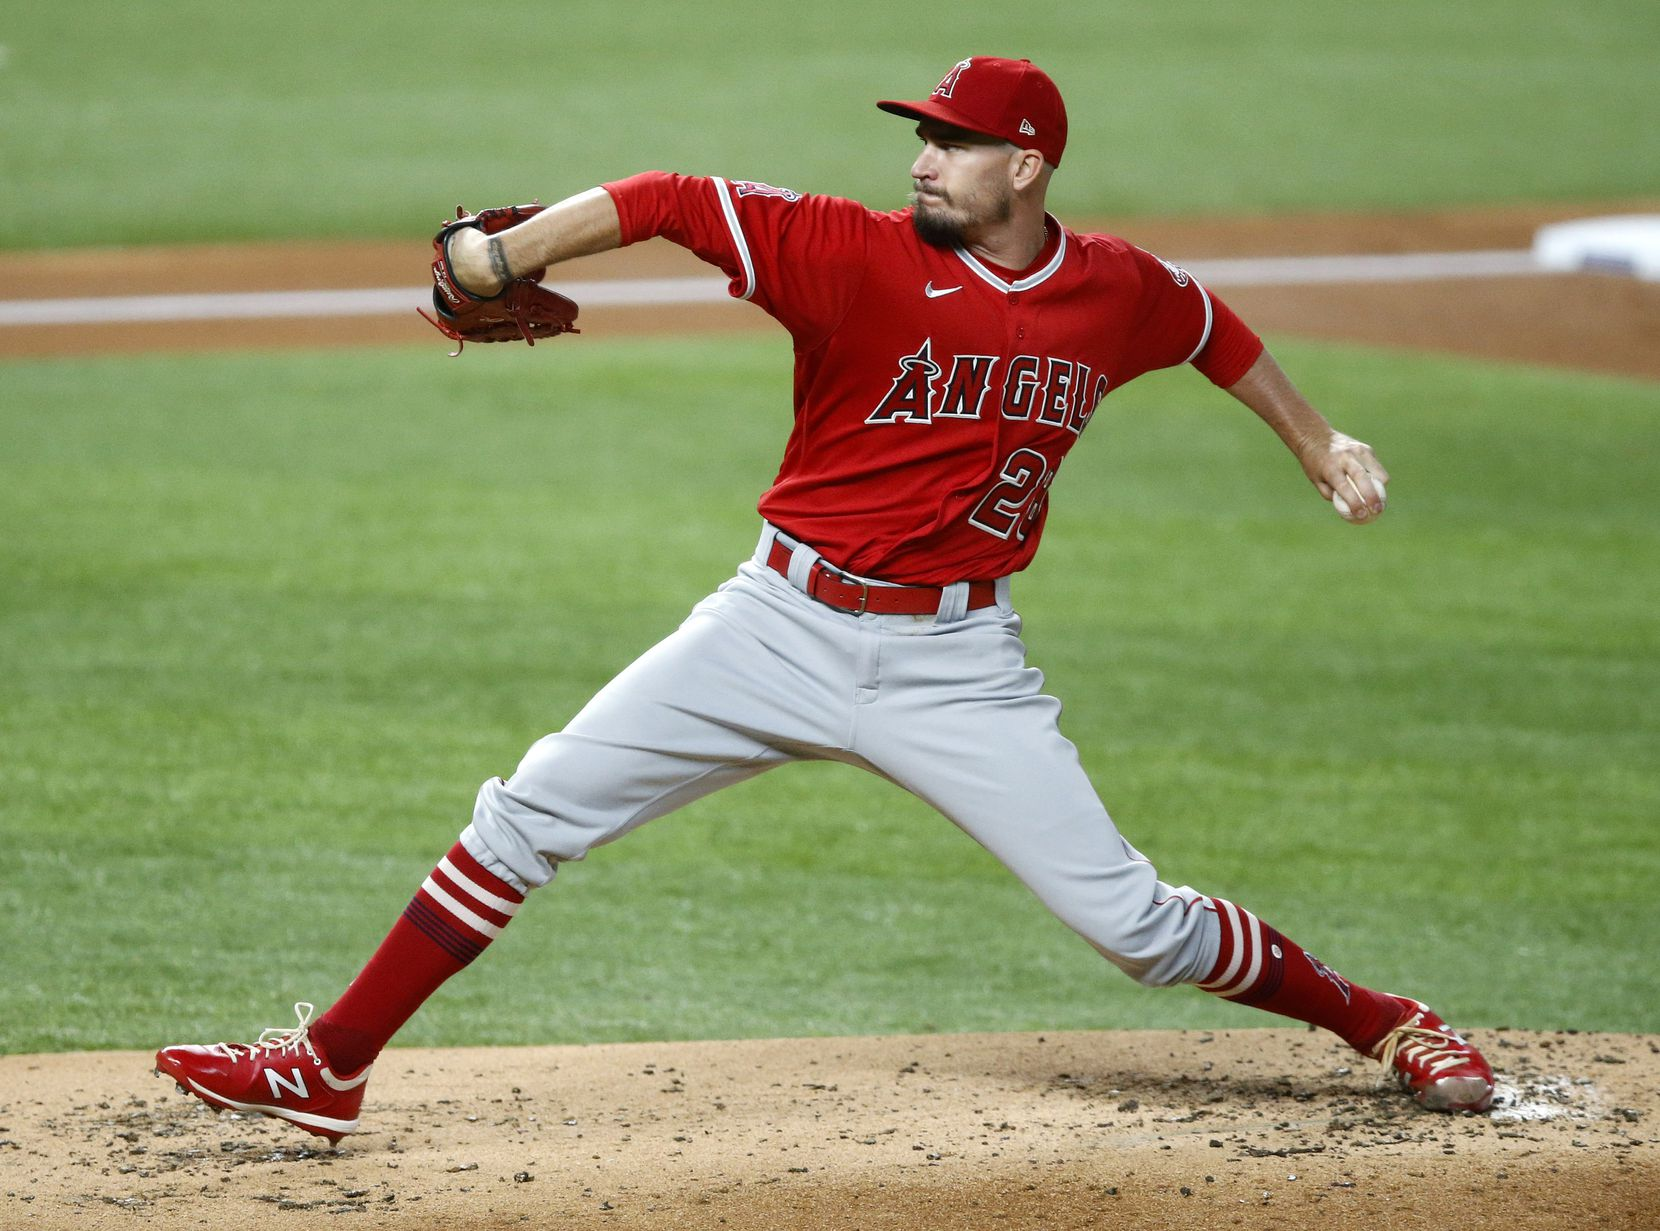 Los Angeles Angels starting pitcher Andrew Heaney (28) throws against the Texas Rangers during first the inning at Globe Life Field in Arlington, Texas, Tuesday, September 8, 2020. (Tom Fox/The Dallas Morning News)